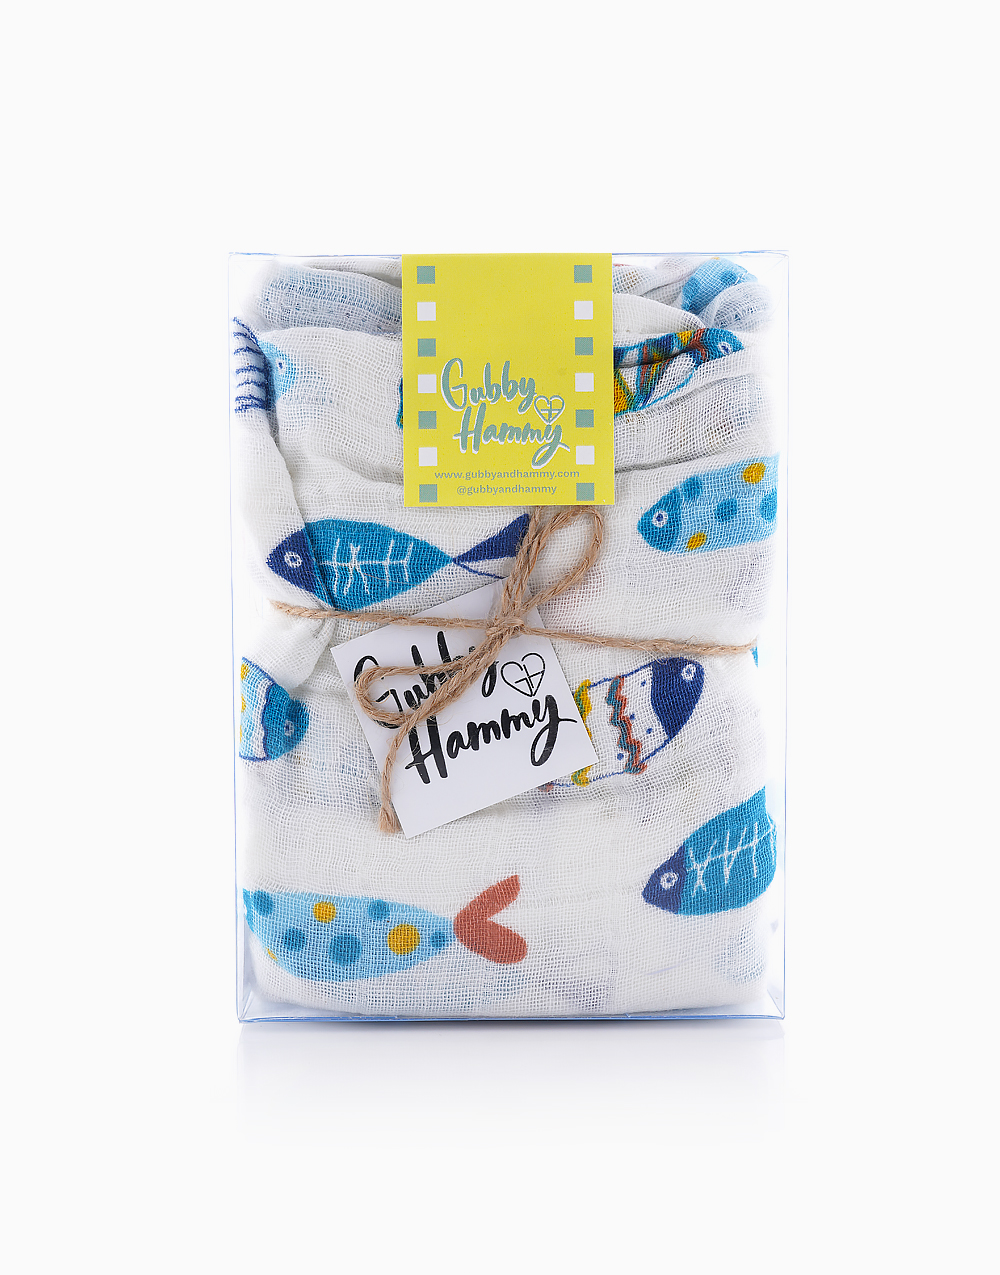 Fisher of Men Swaddle by Gubby and Hammy